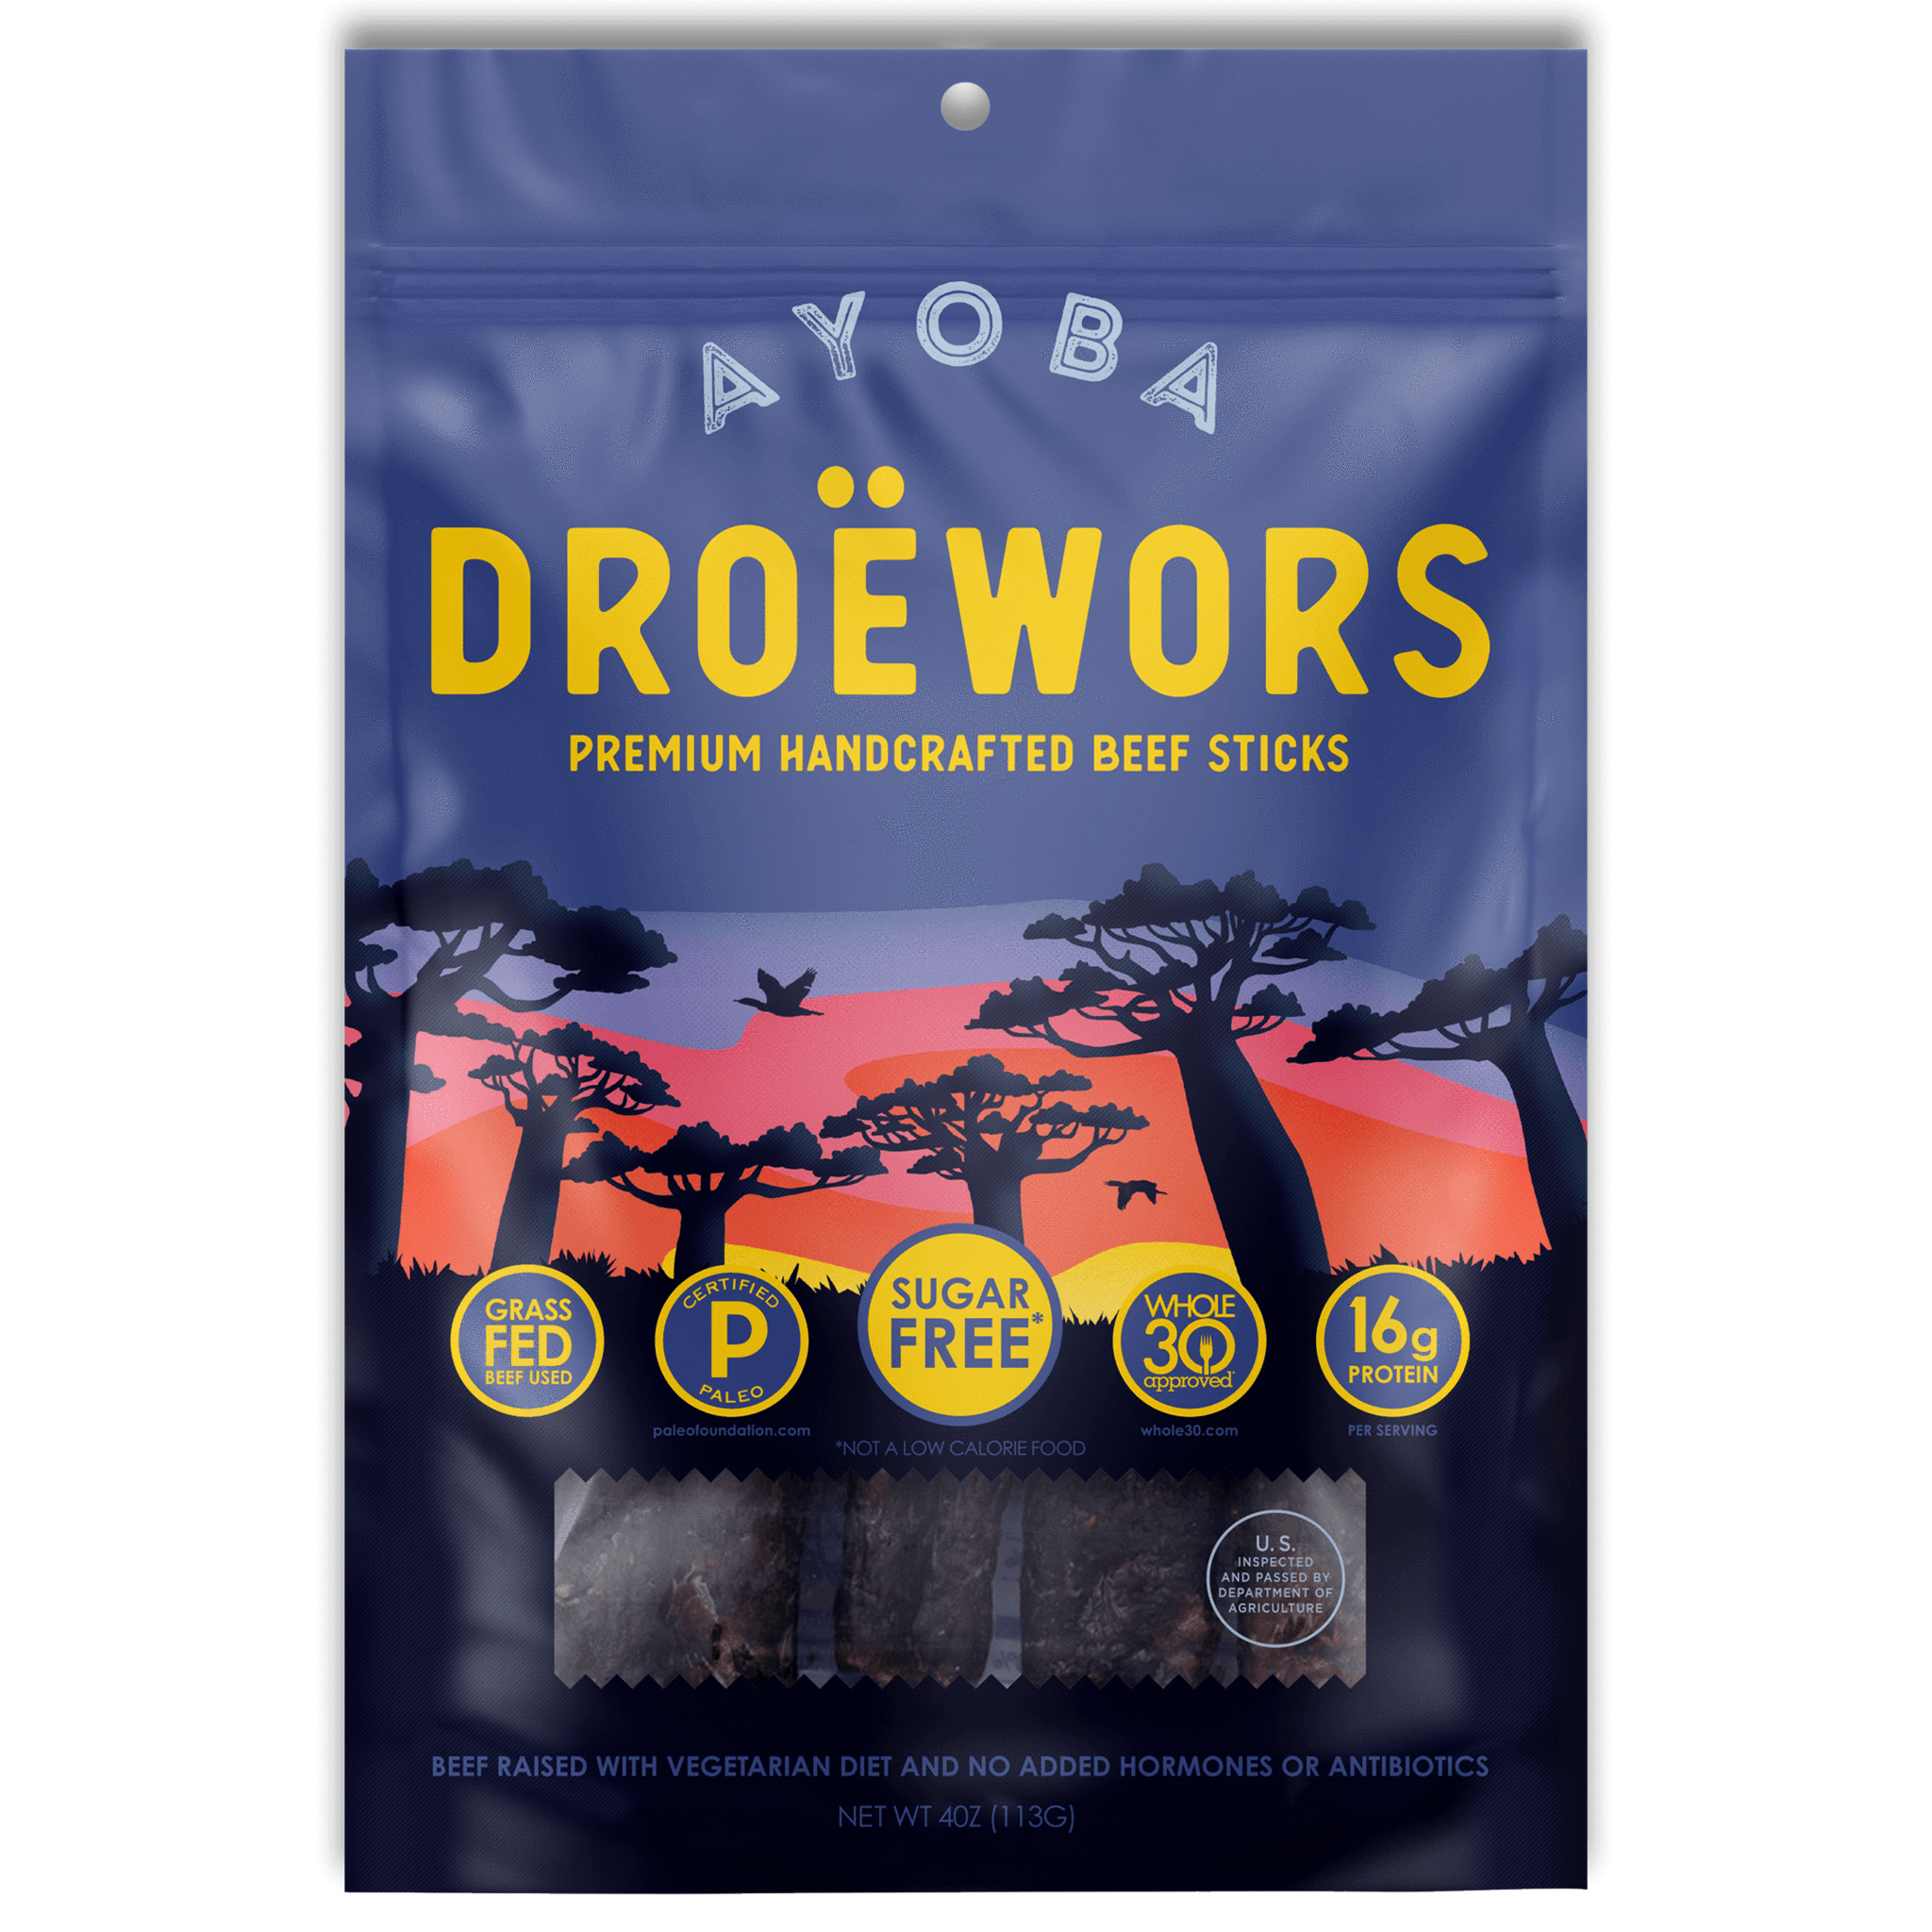 Ayoba Grass Fed Beef Droewors - Ayoba - Certified Paleo, Keto Certified by the Paleo Foundation